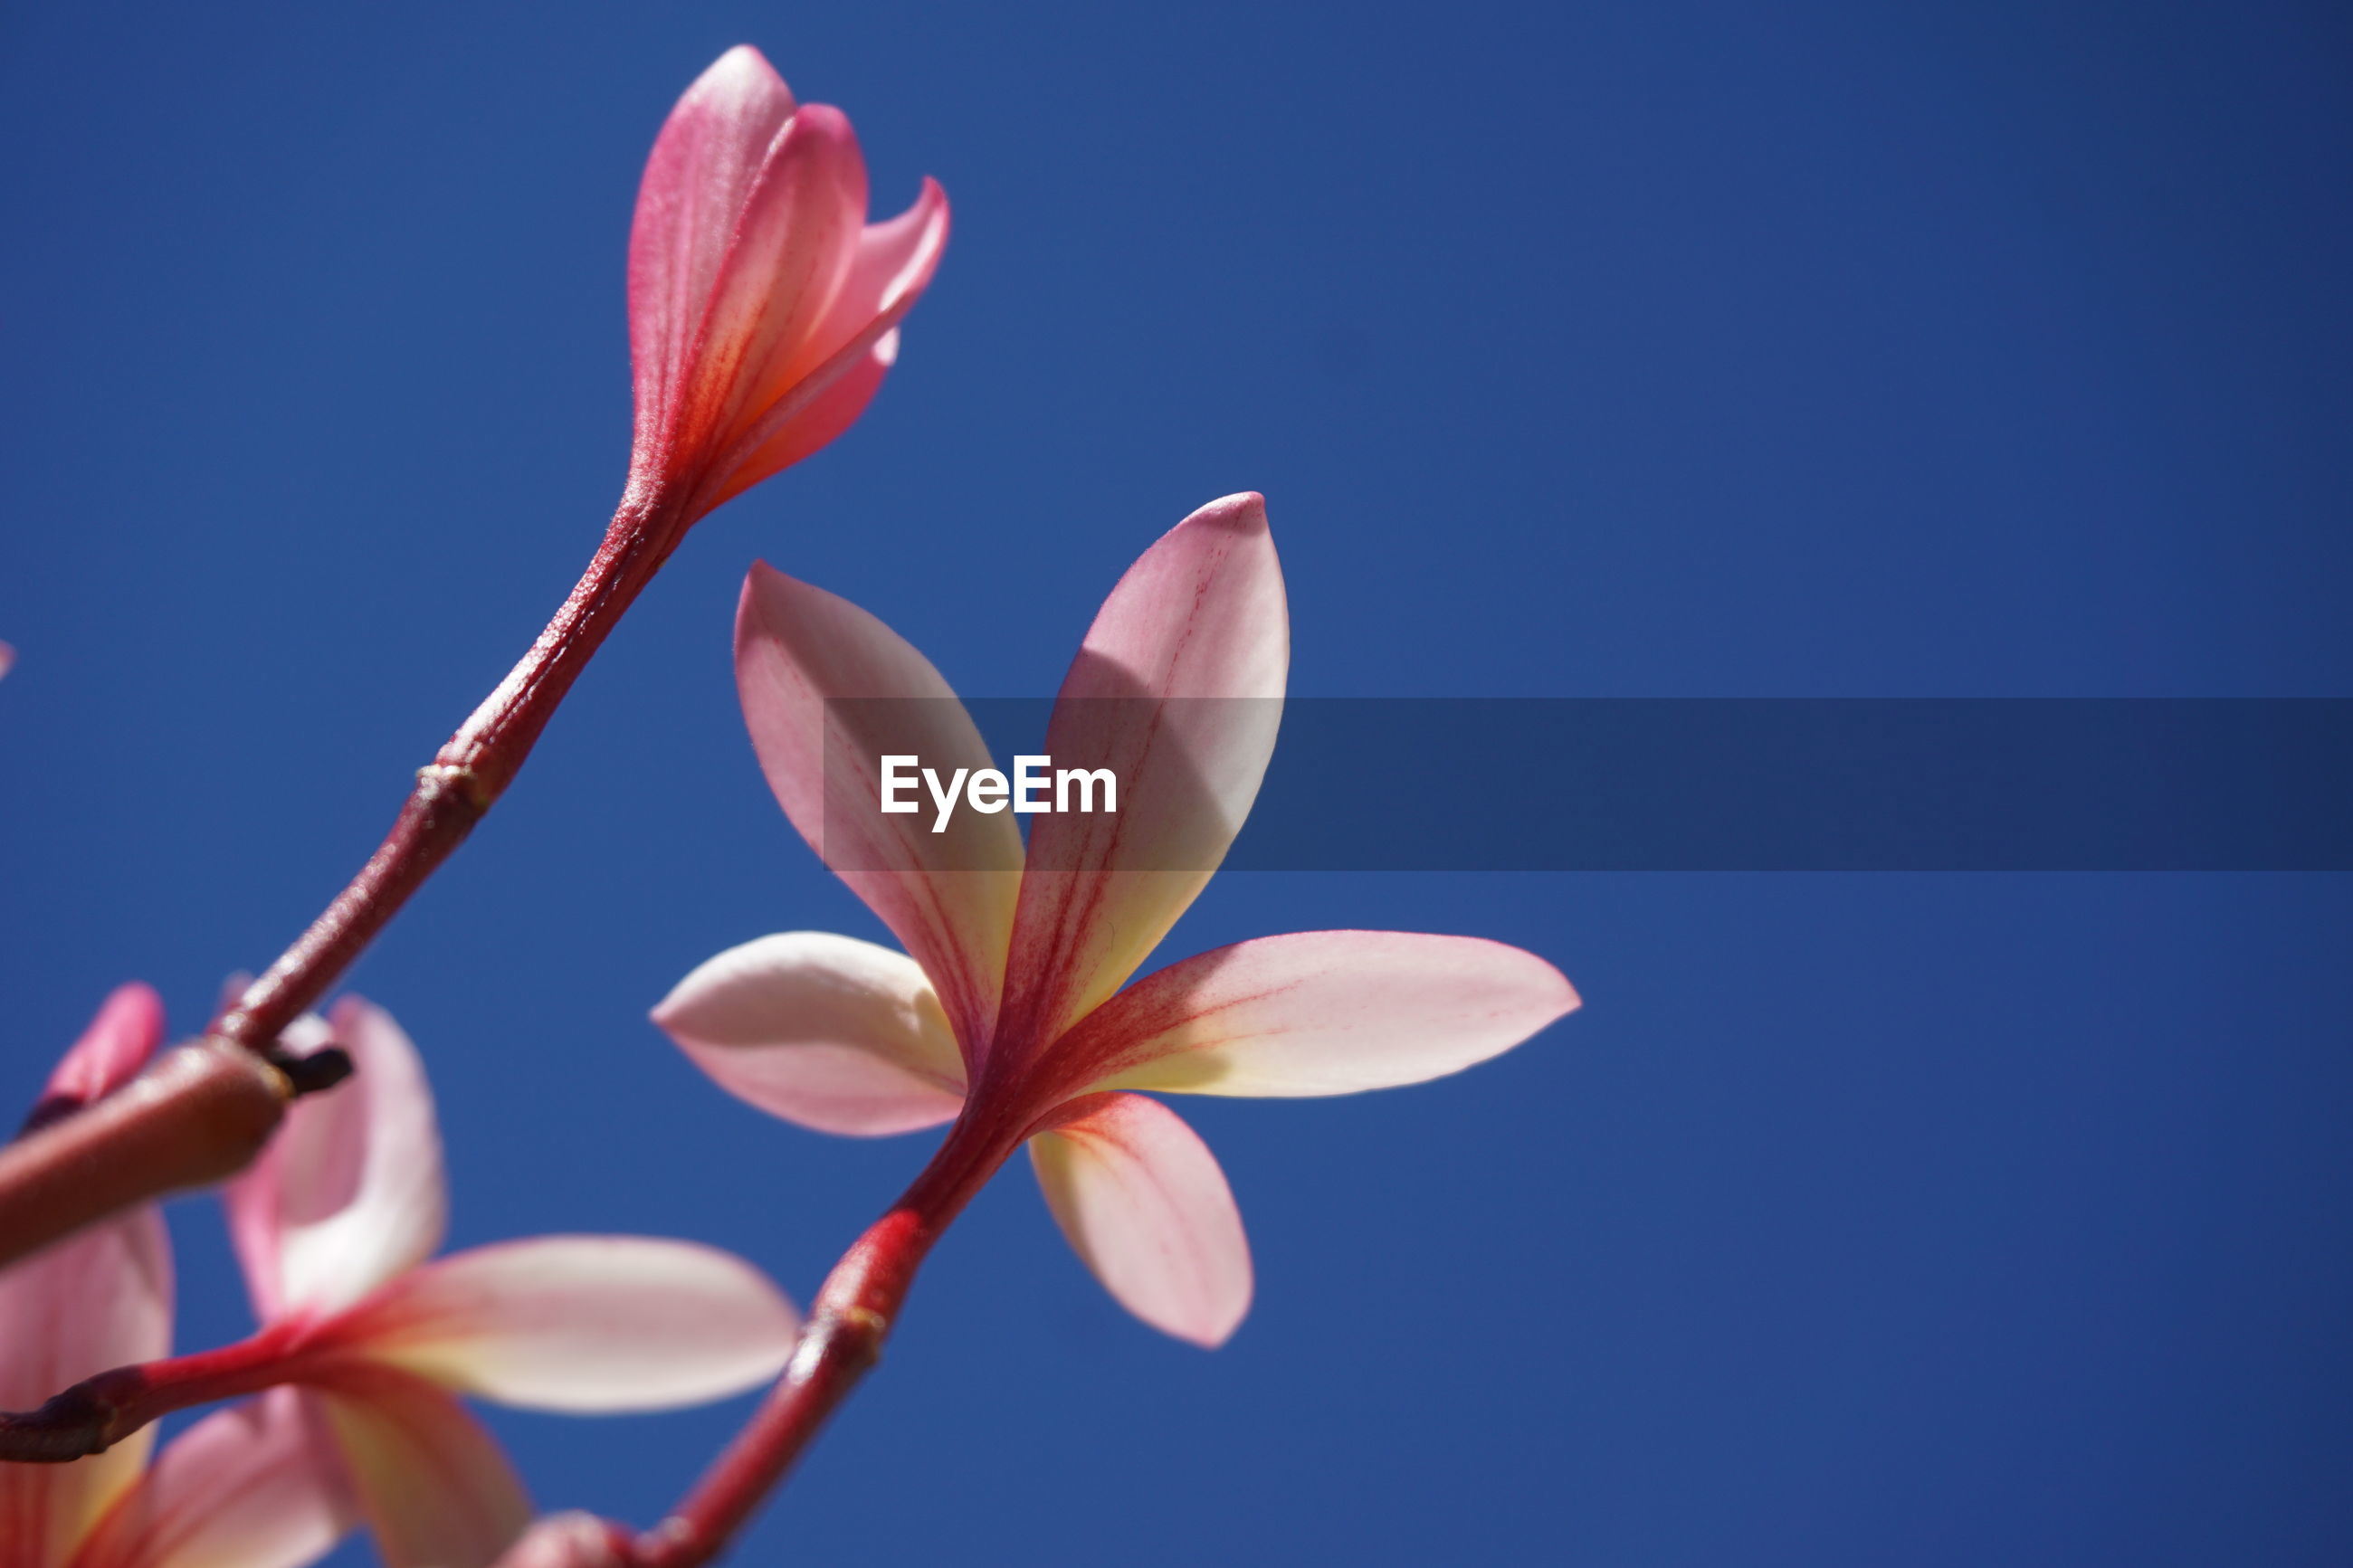 CLOSE-UP OF PINK BLUE FLOWER AGAINST CLEAR SKY